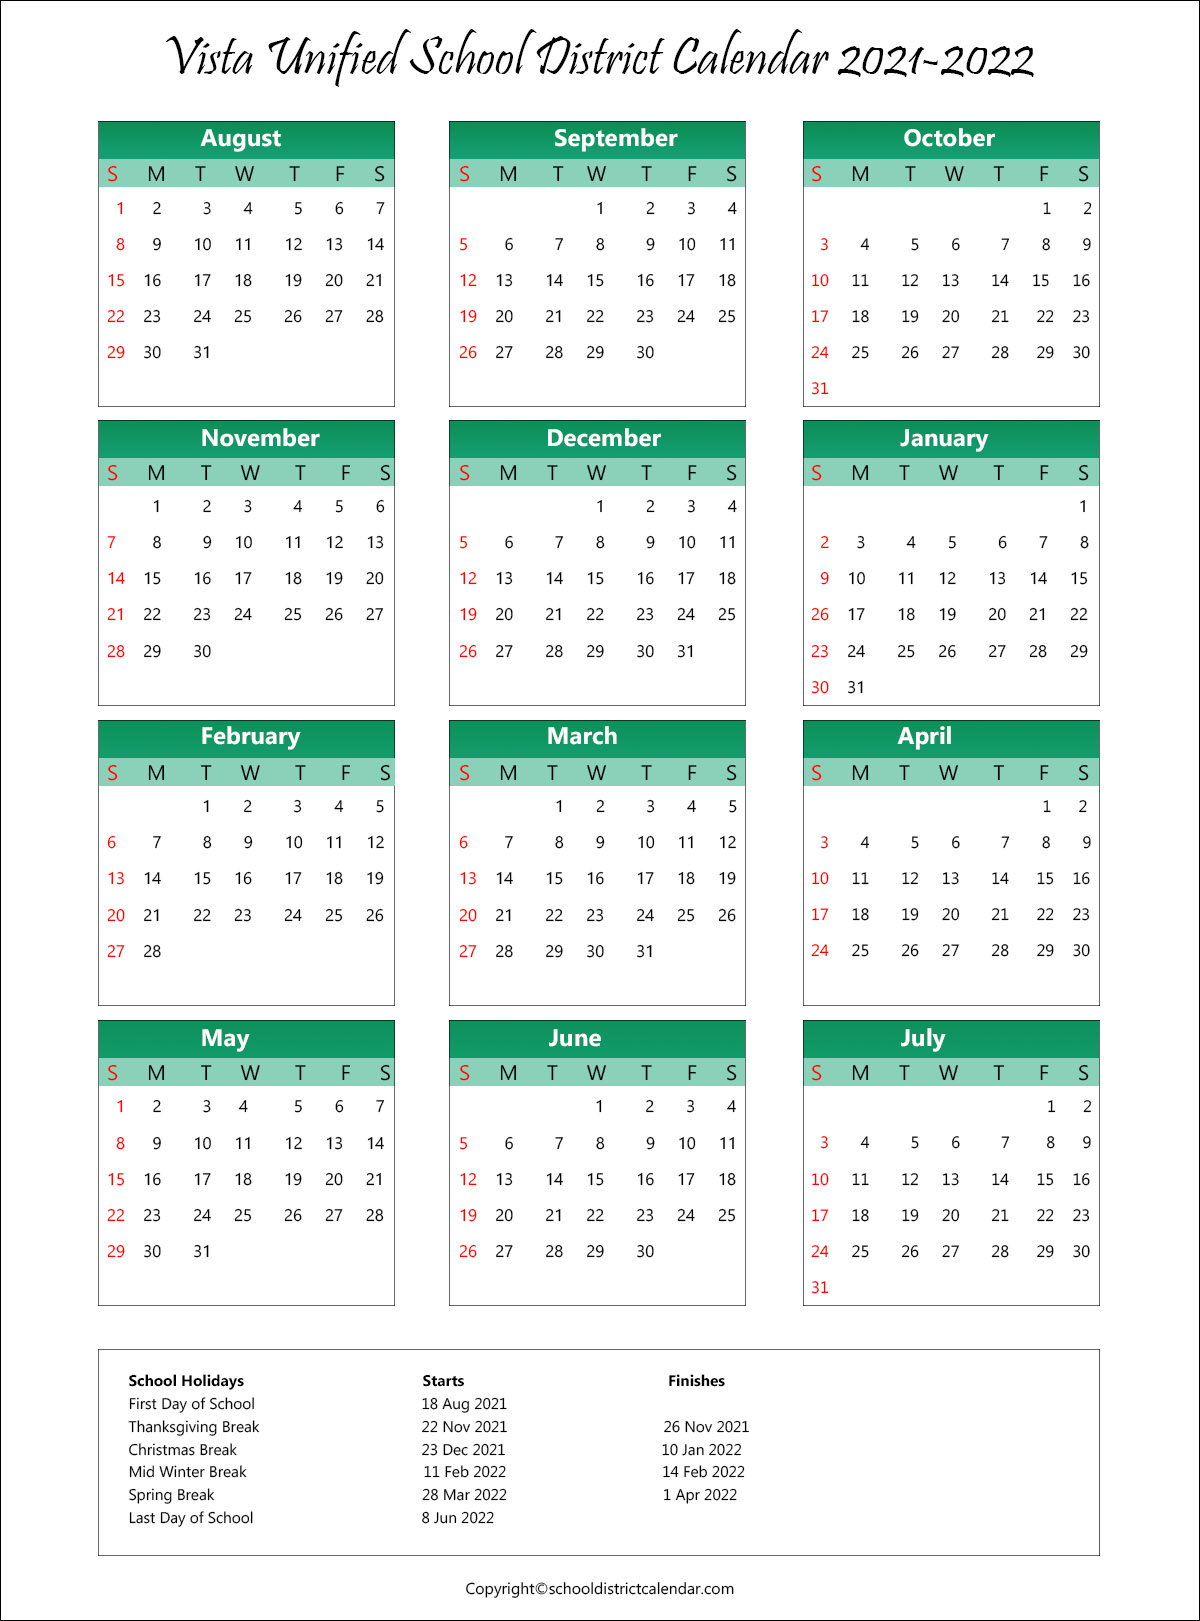 Vista Unified School District, California Calendar Holidays 2021